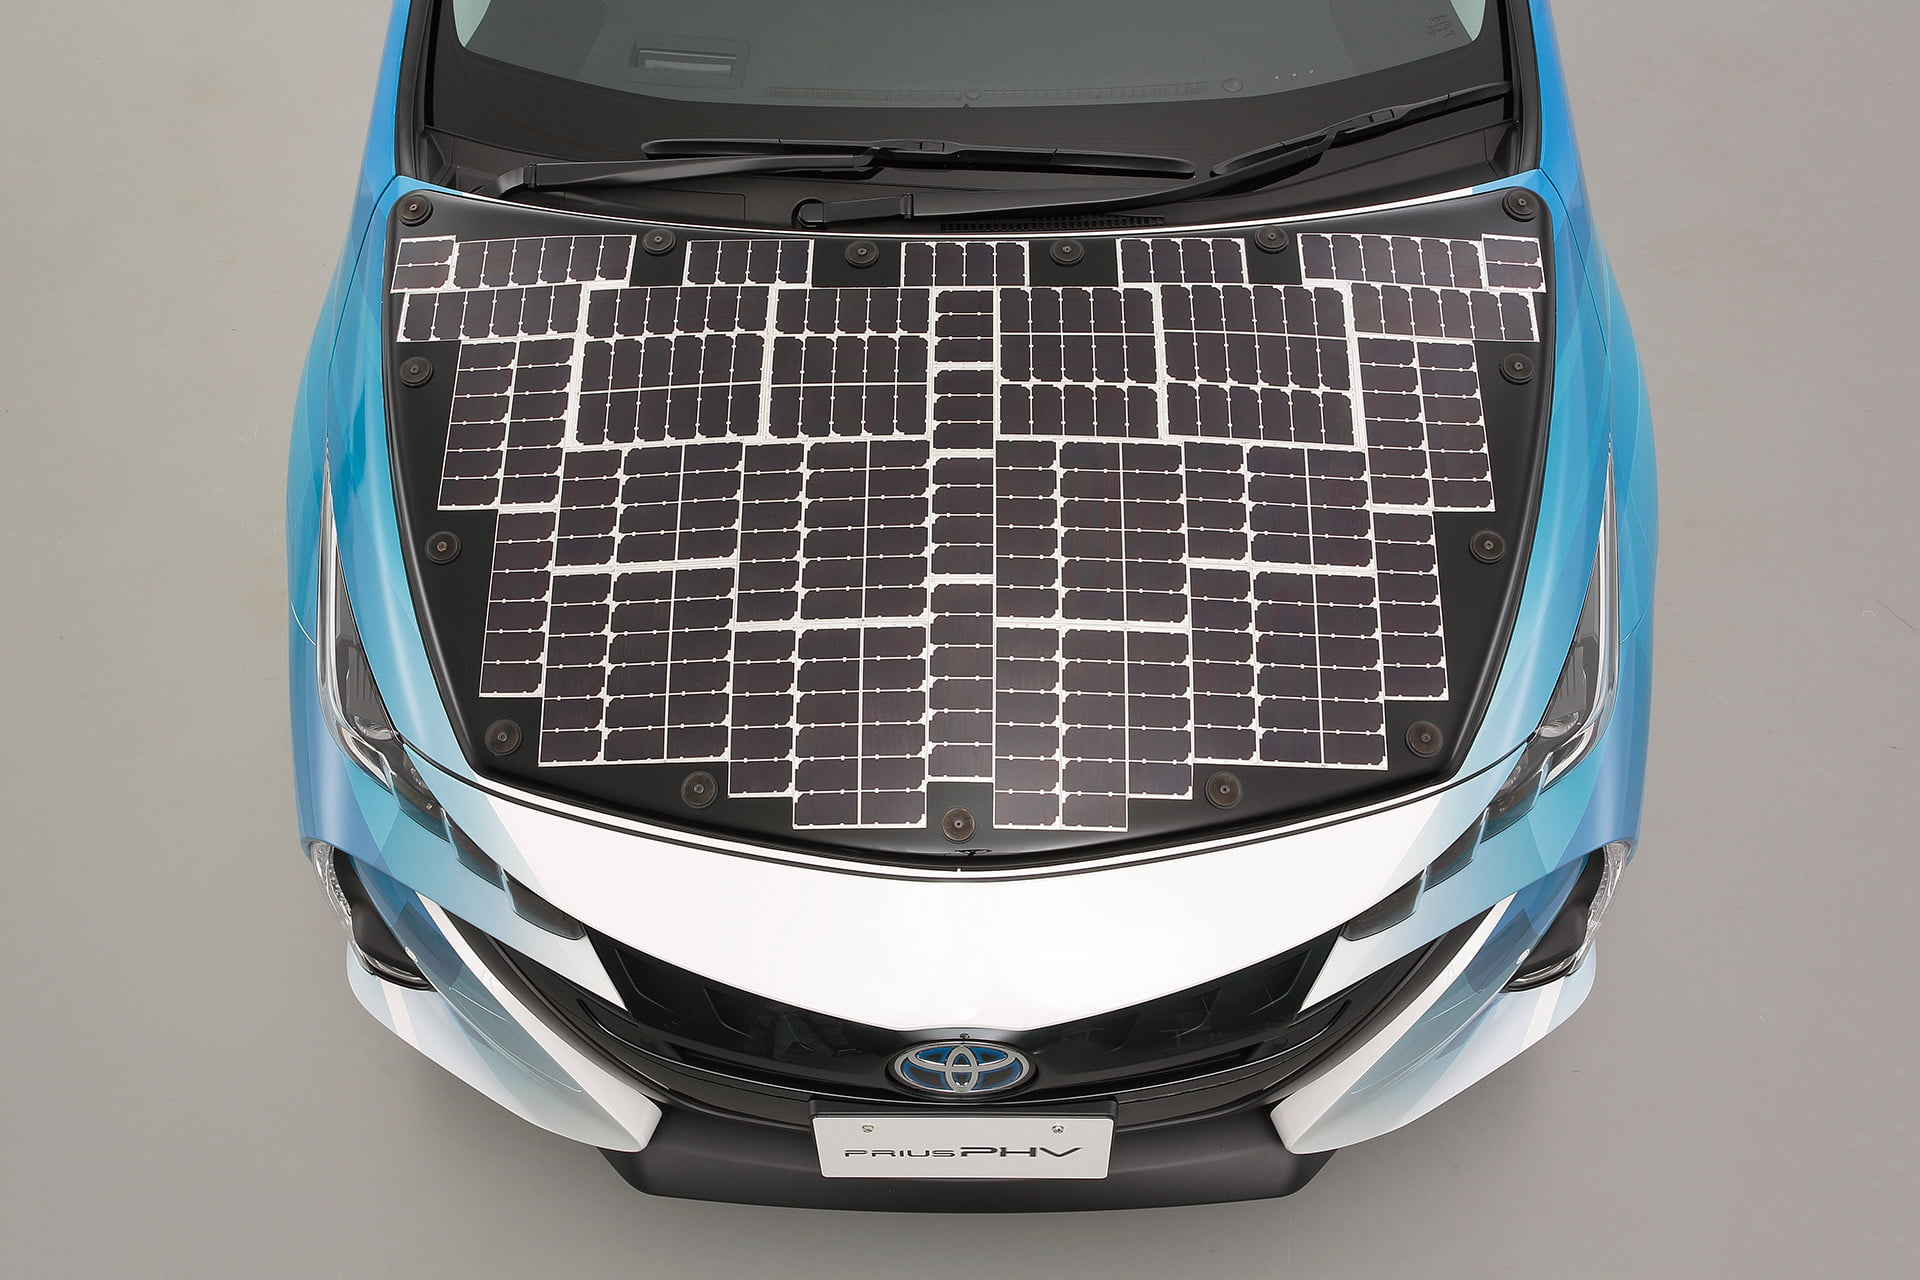 Toyota covers a Prius in solar cells to boost its range by 27 miles